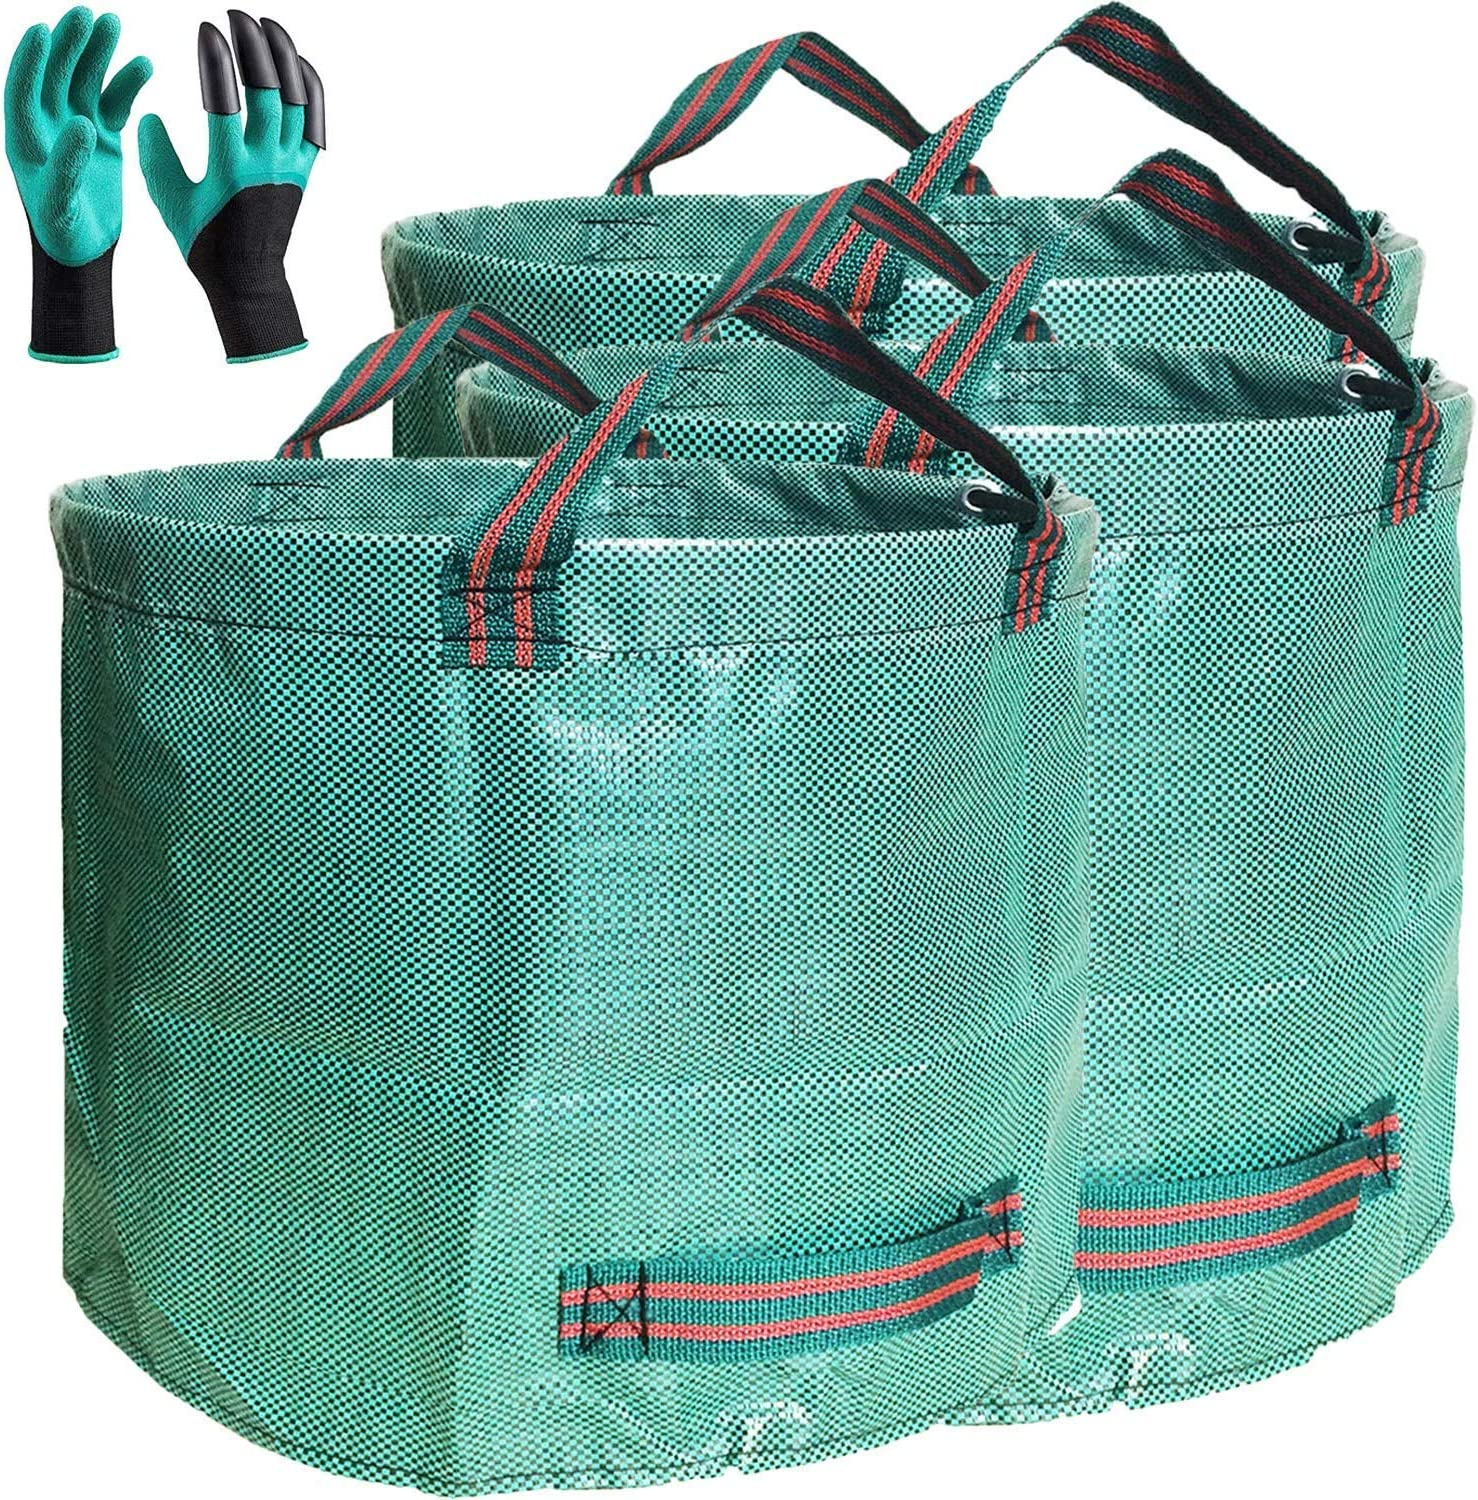 Professional 3-Pack 137 Gallon Lawn Garden Bags (D34, H34 inches) Huge Yard Waste Bags with Coated Gloves, Extra Large Reusable Yard Leaf Bags 4 Handles,Garden Clippings Bags,Leaf Container,Trash Bags